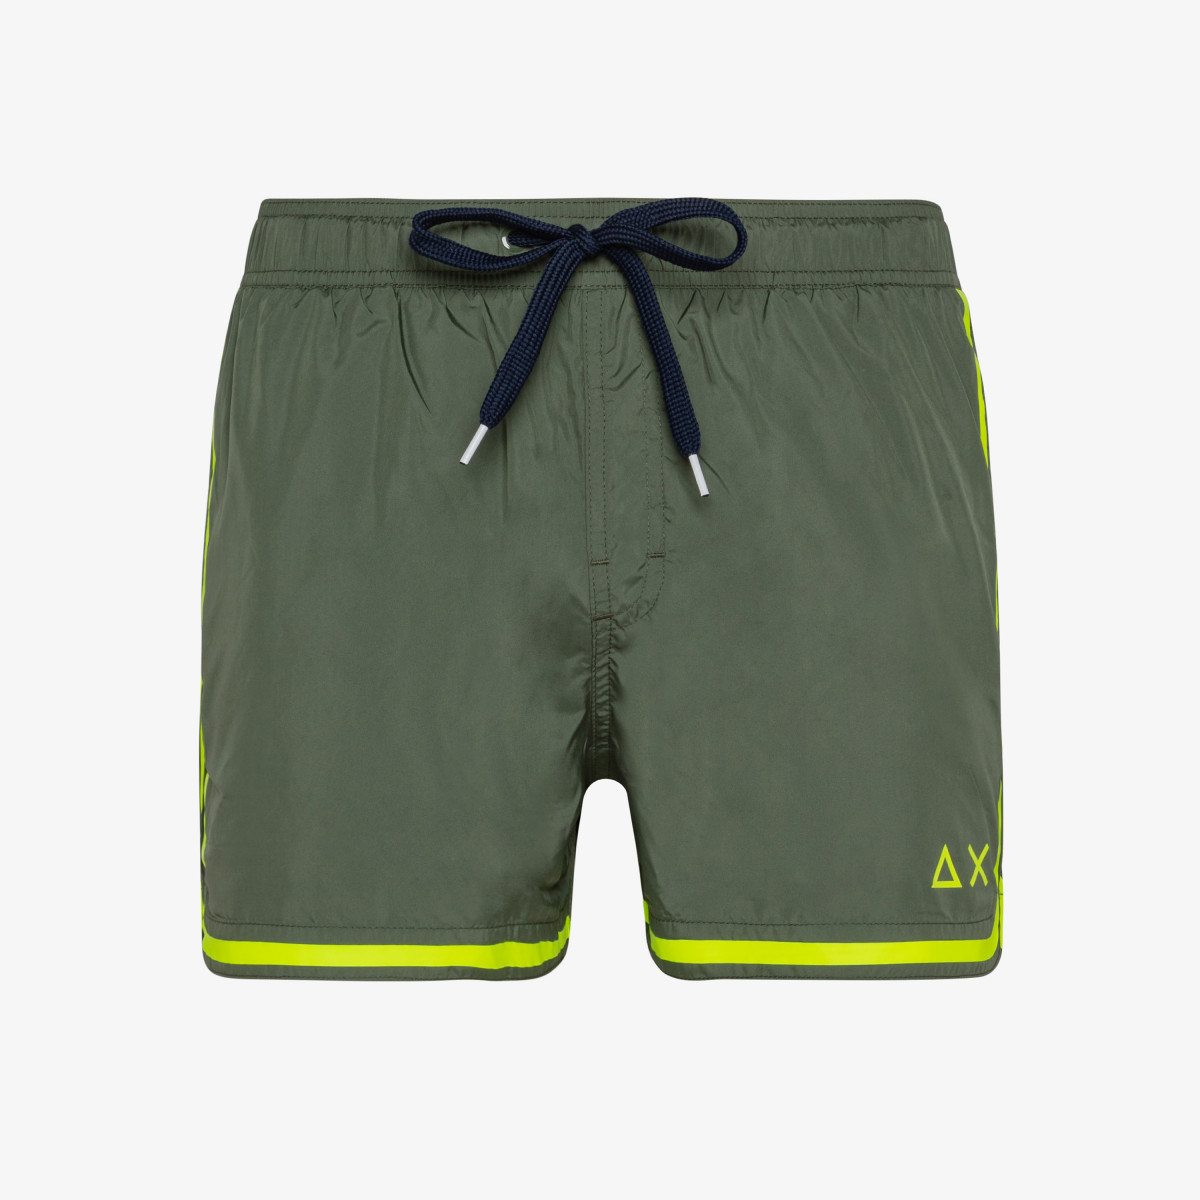 SWIM PANT SIDE BAND WHITE MILITARY